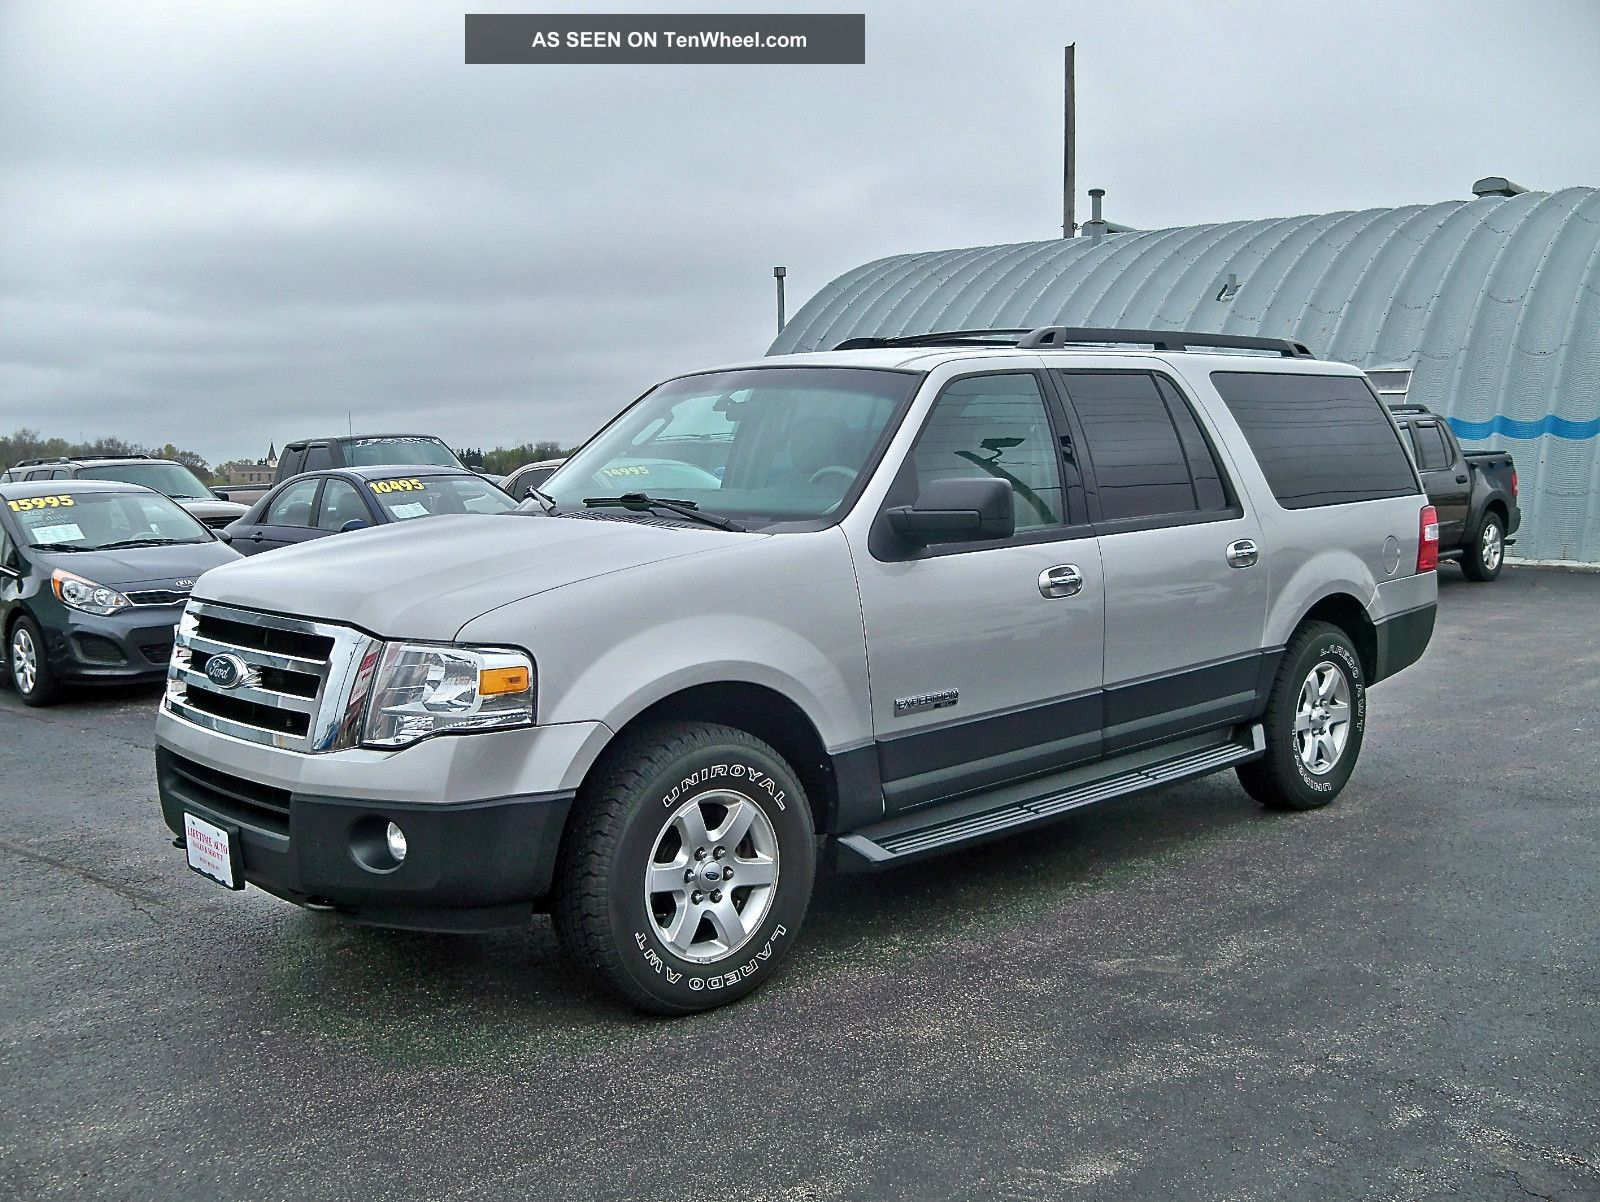 2007 ford expedition el image 12